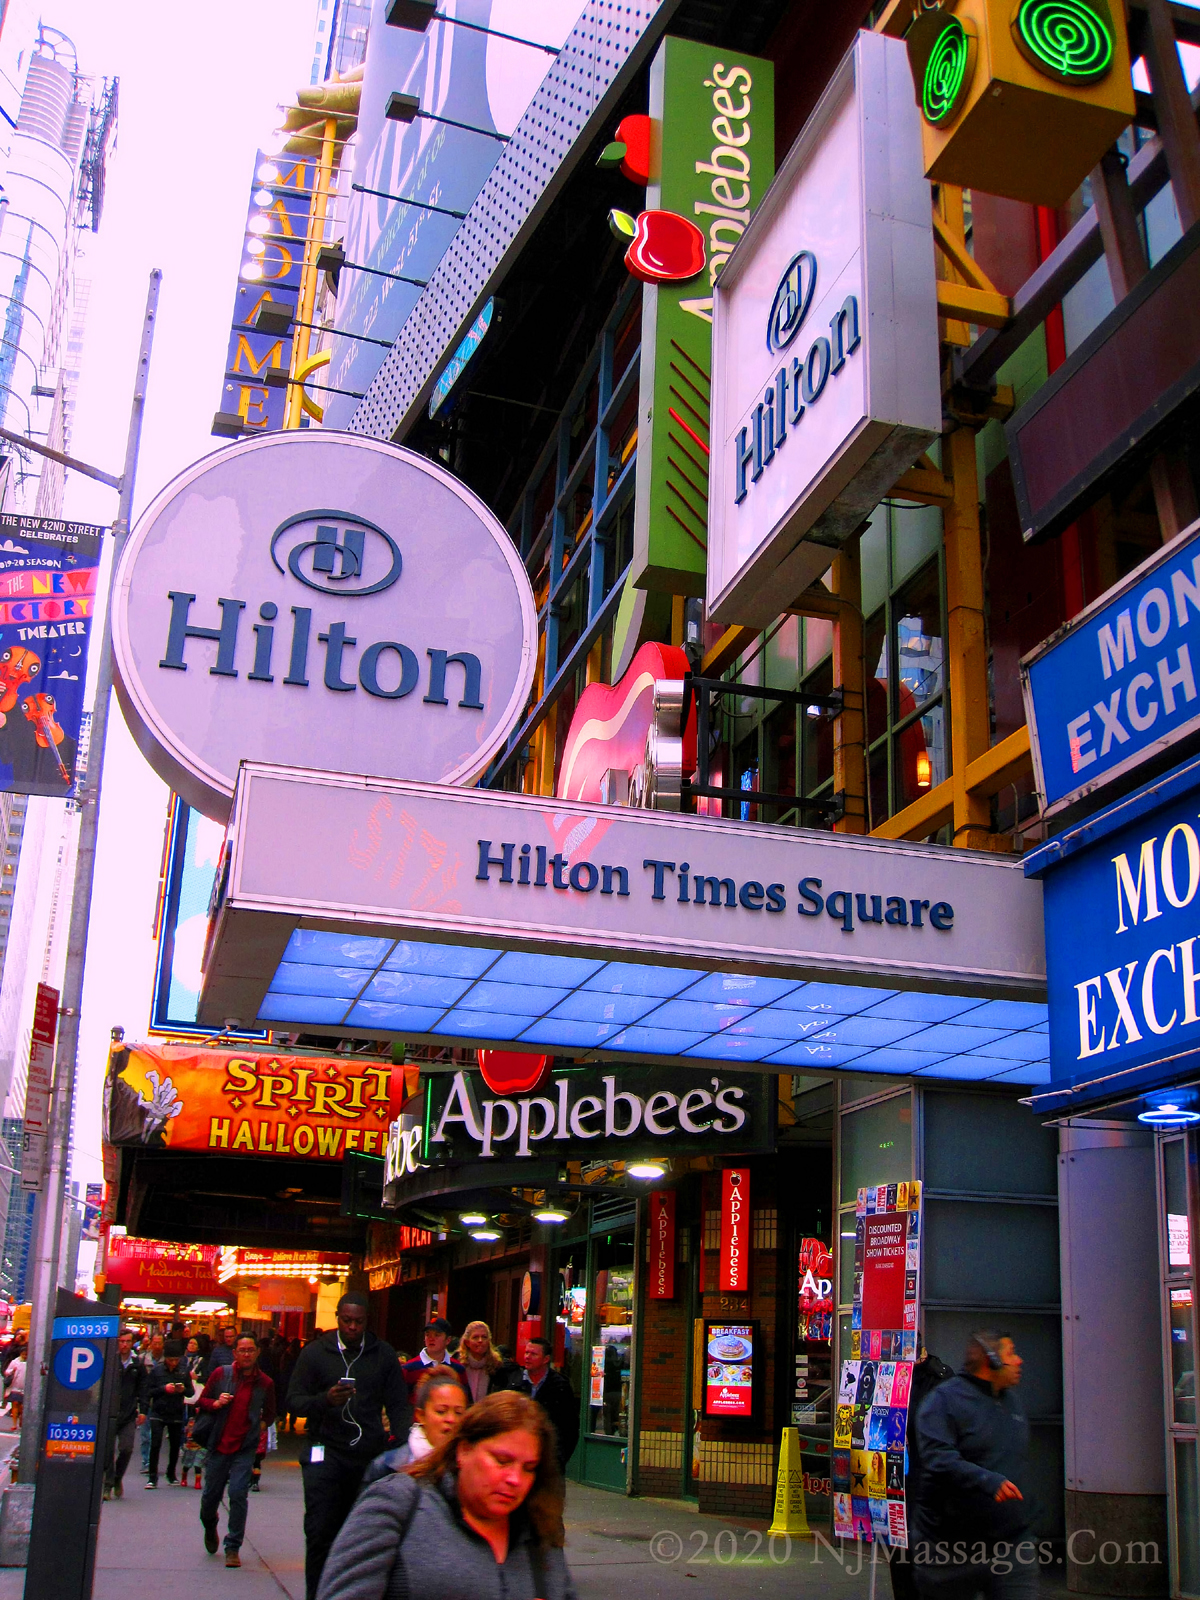 The Hilton Times Square Is A Very POpular Tourist Destination FOr Those Visiting Times Square